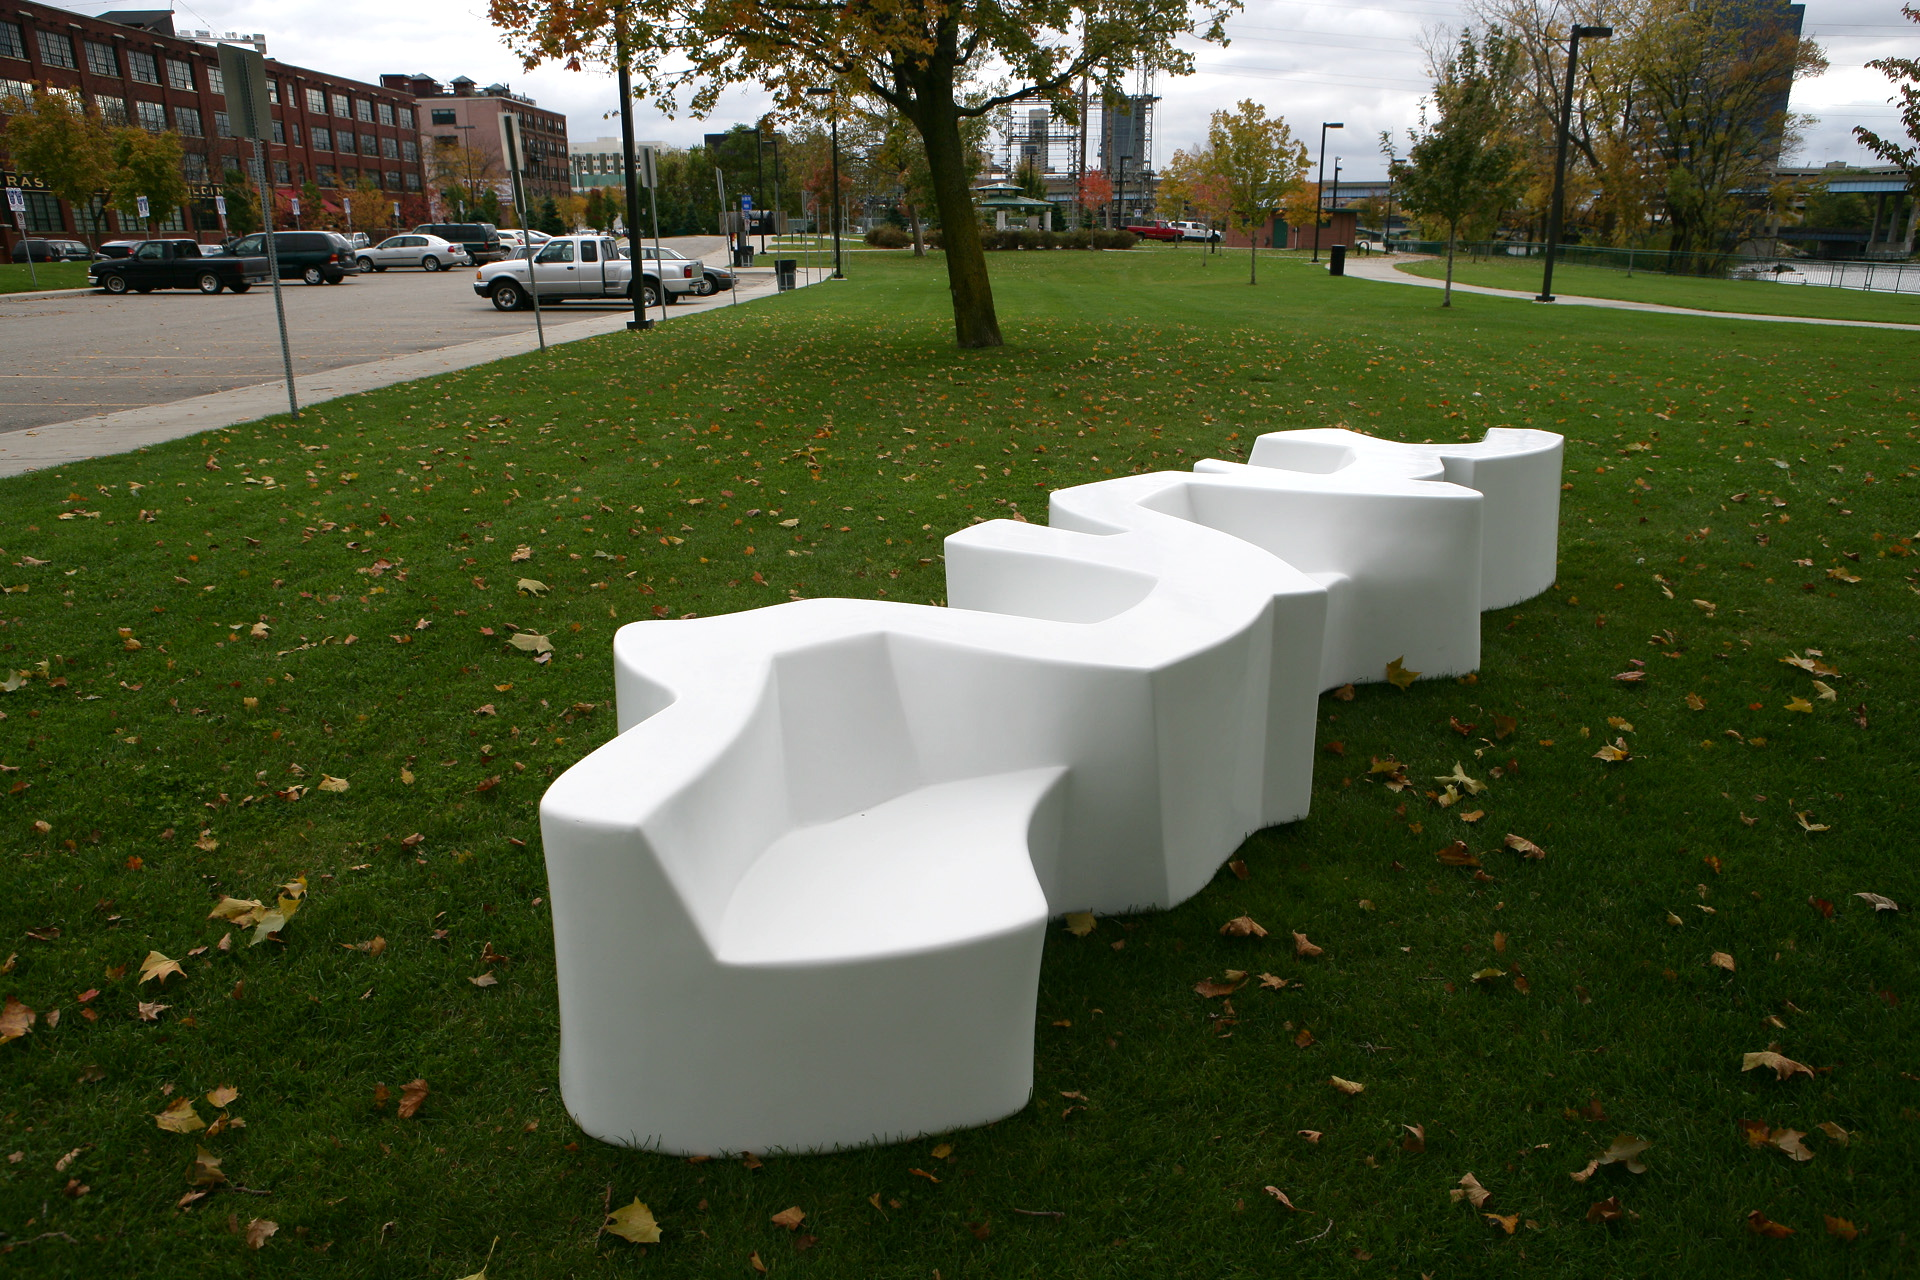 public seating chairs mickey mouse clubhouse chair furniture by cameron van dyke at coroflot